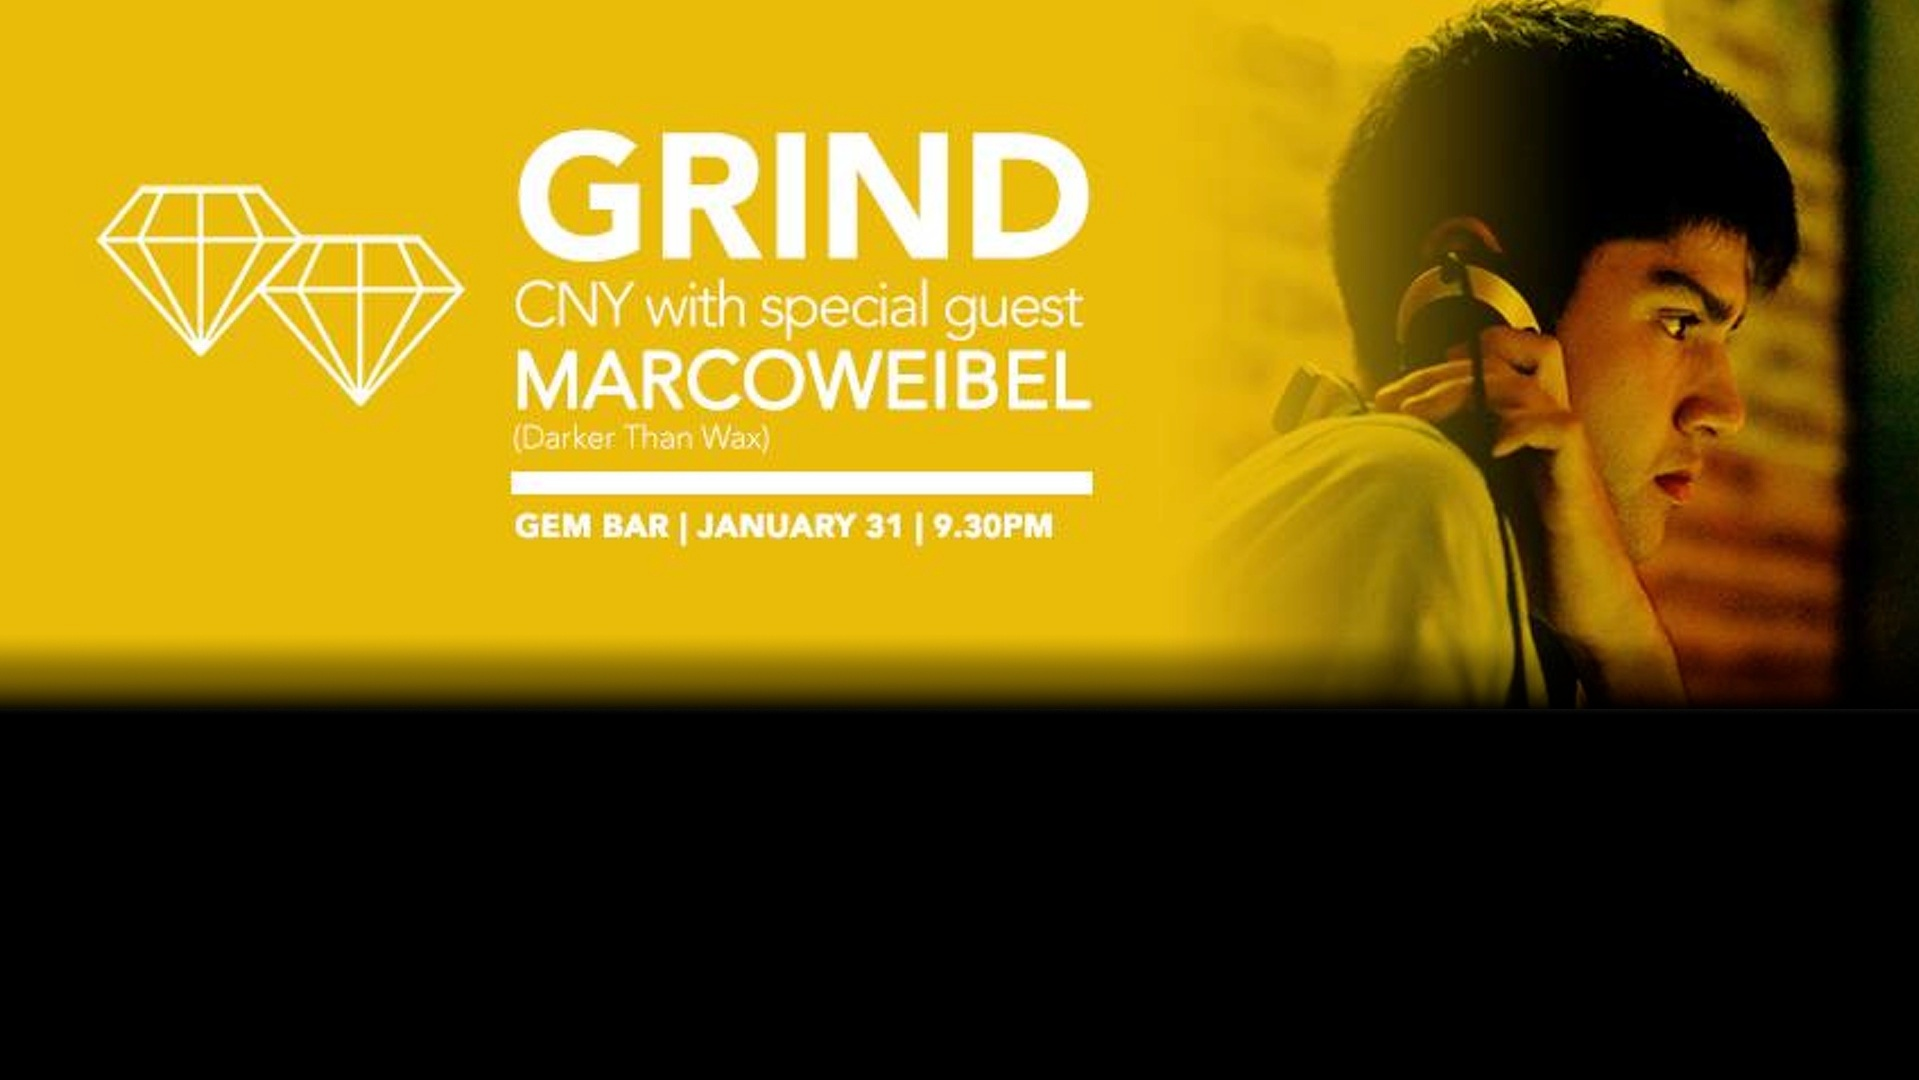 GRIND with special guest Marcoweibel